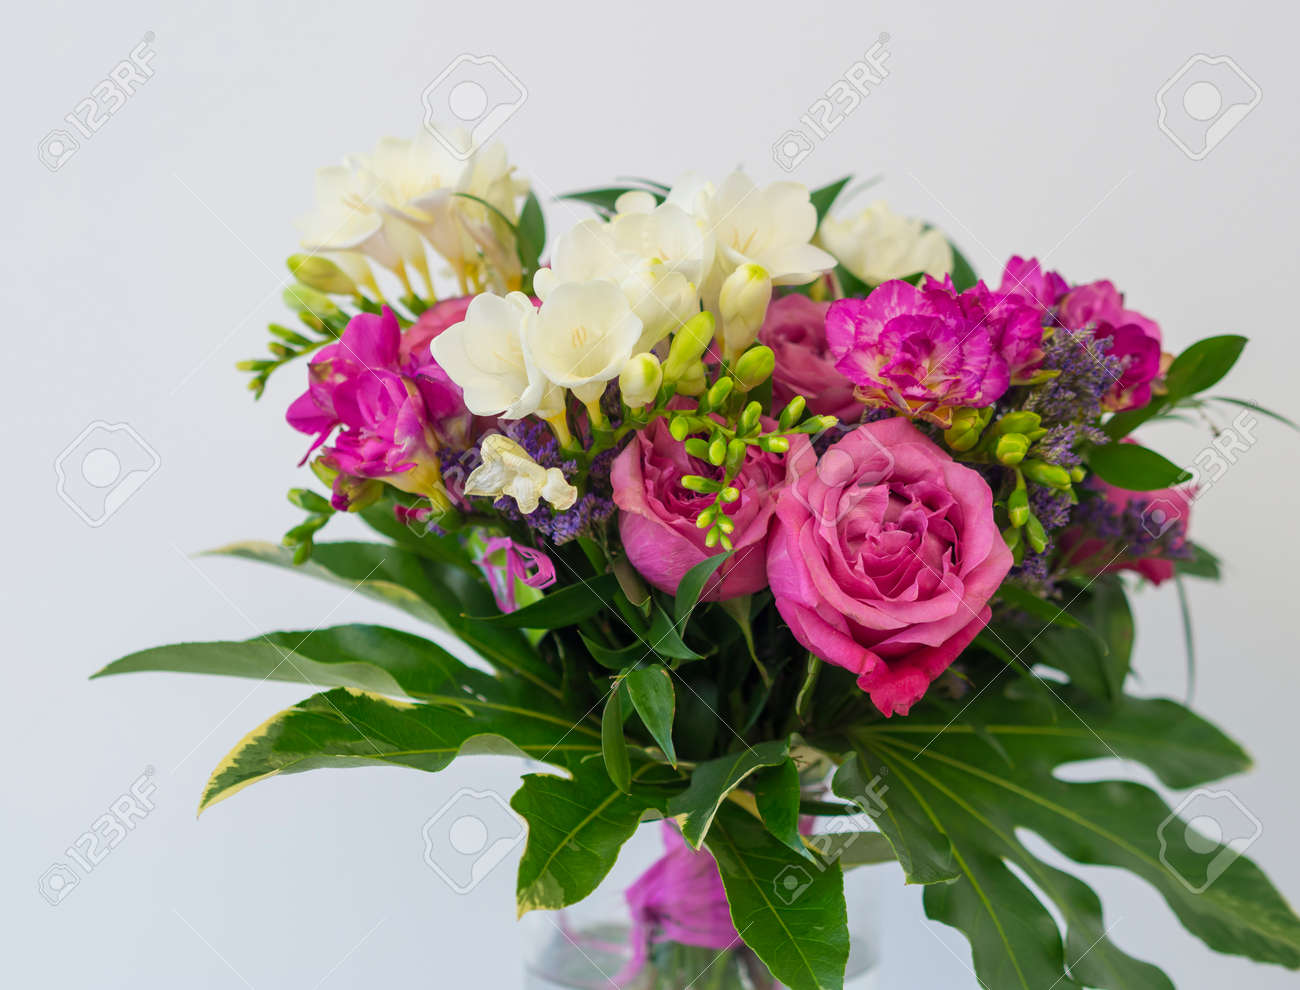 Close Up Pink Rose And White Freesia Flower Bouquet With Green